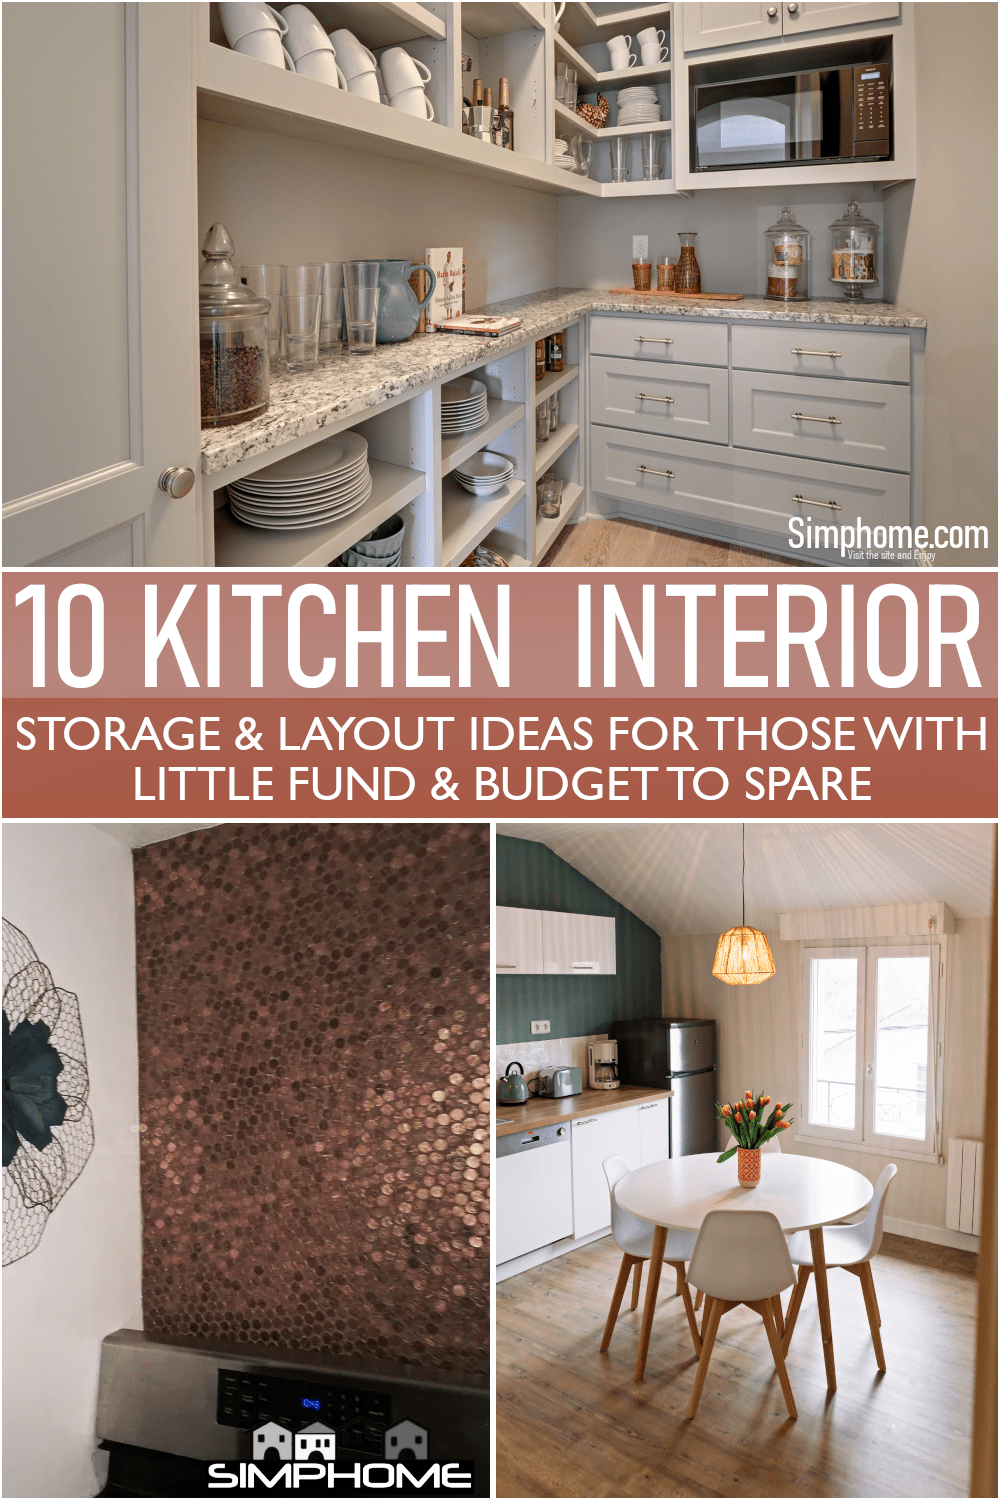 Enjoy and take inspiration from these 10 Kitchen Interior and Layout Ideas for Cheaps